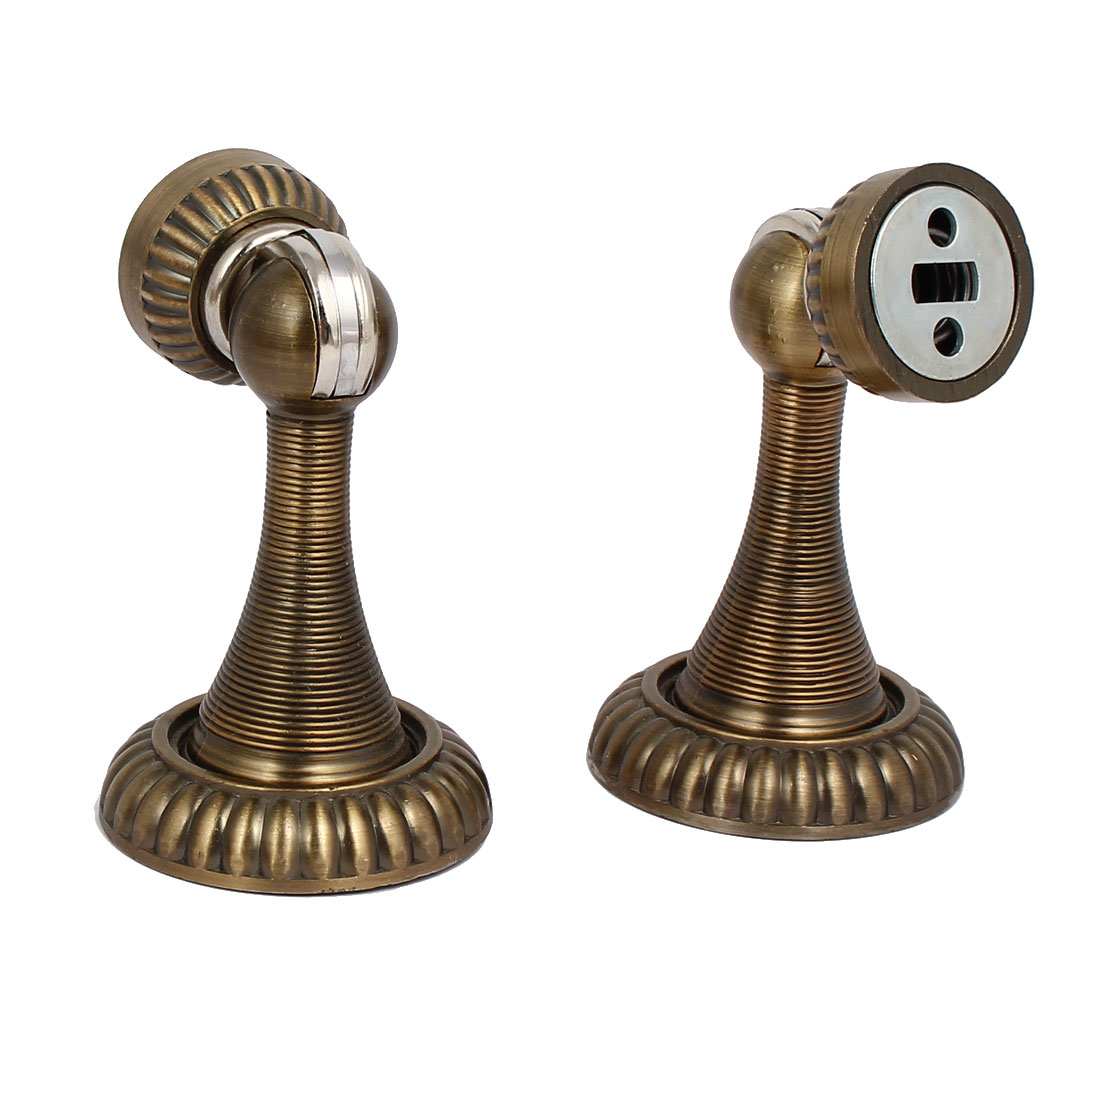 Kitchen Bathroom Door Stopper Holder Magnetic Catches Bronze Tone 53mmx85mm 2pcs